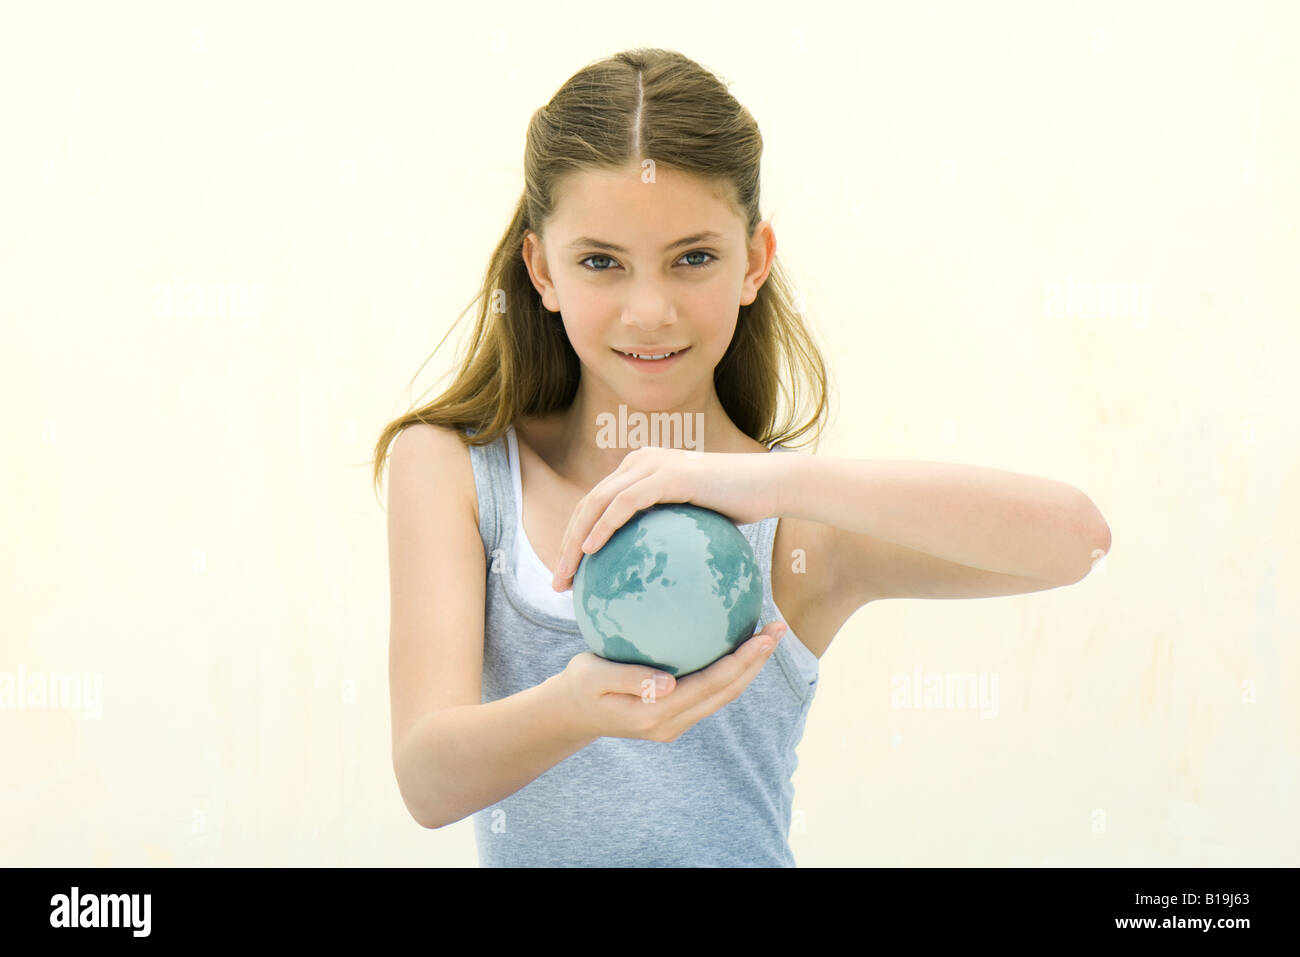 Preteen girl holding small globe in hands, smiling at camera - Stock Image